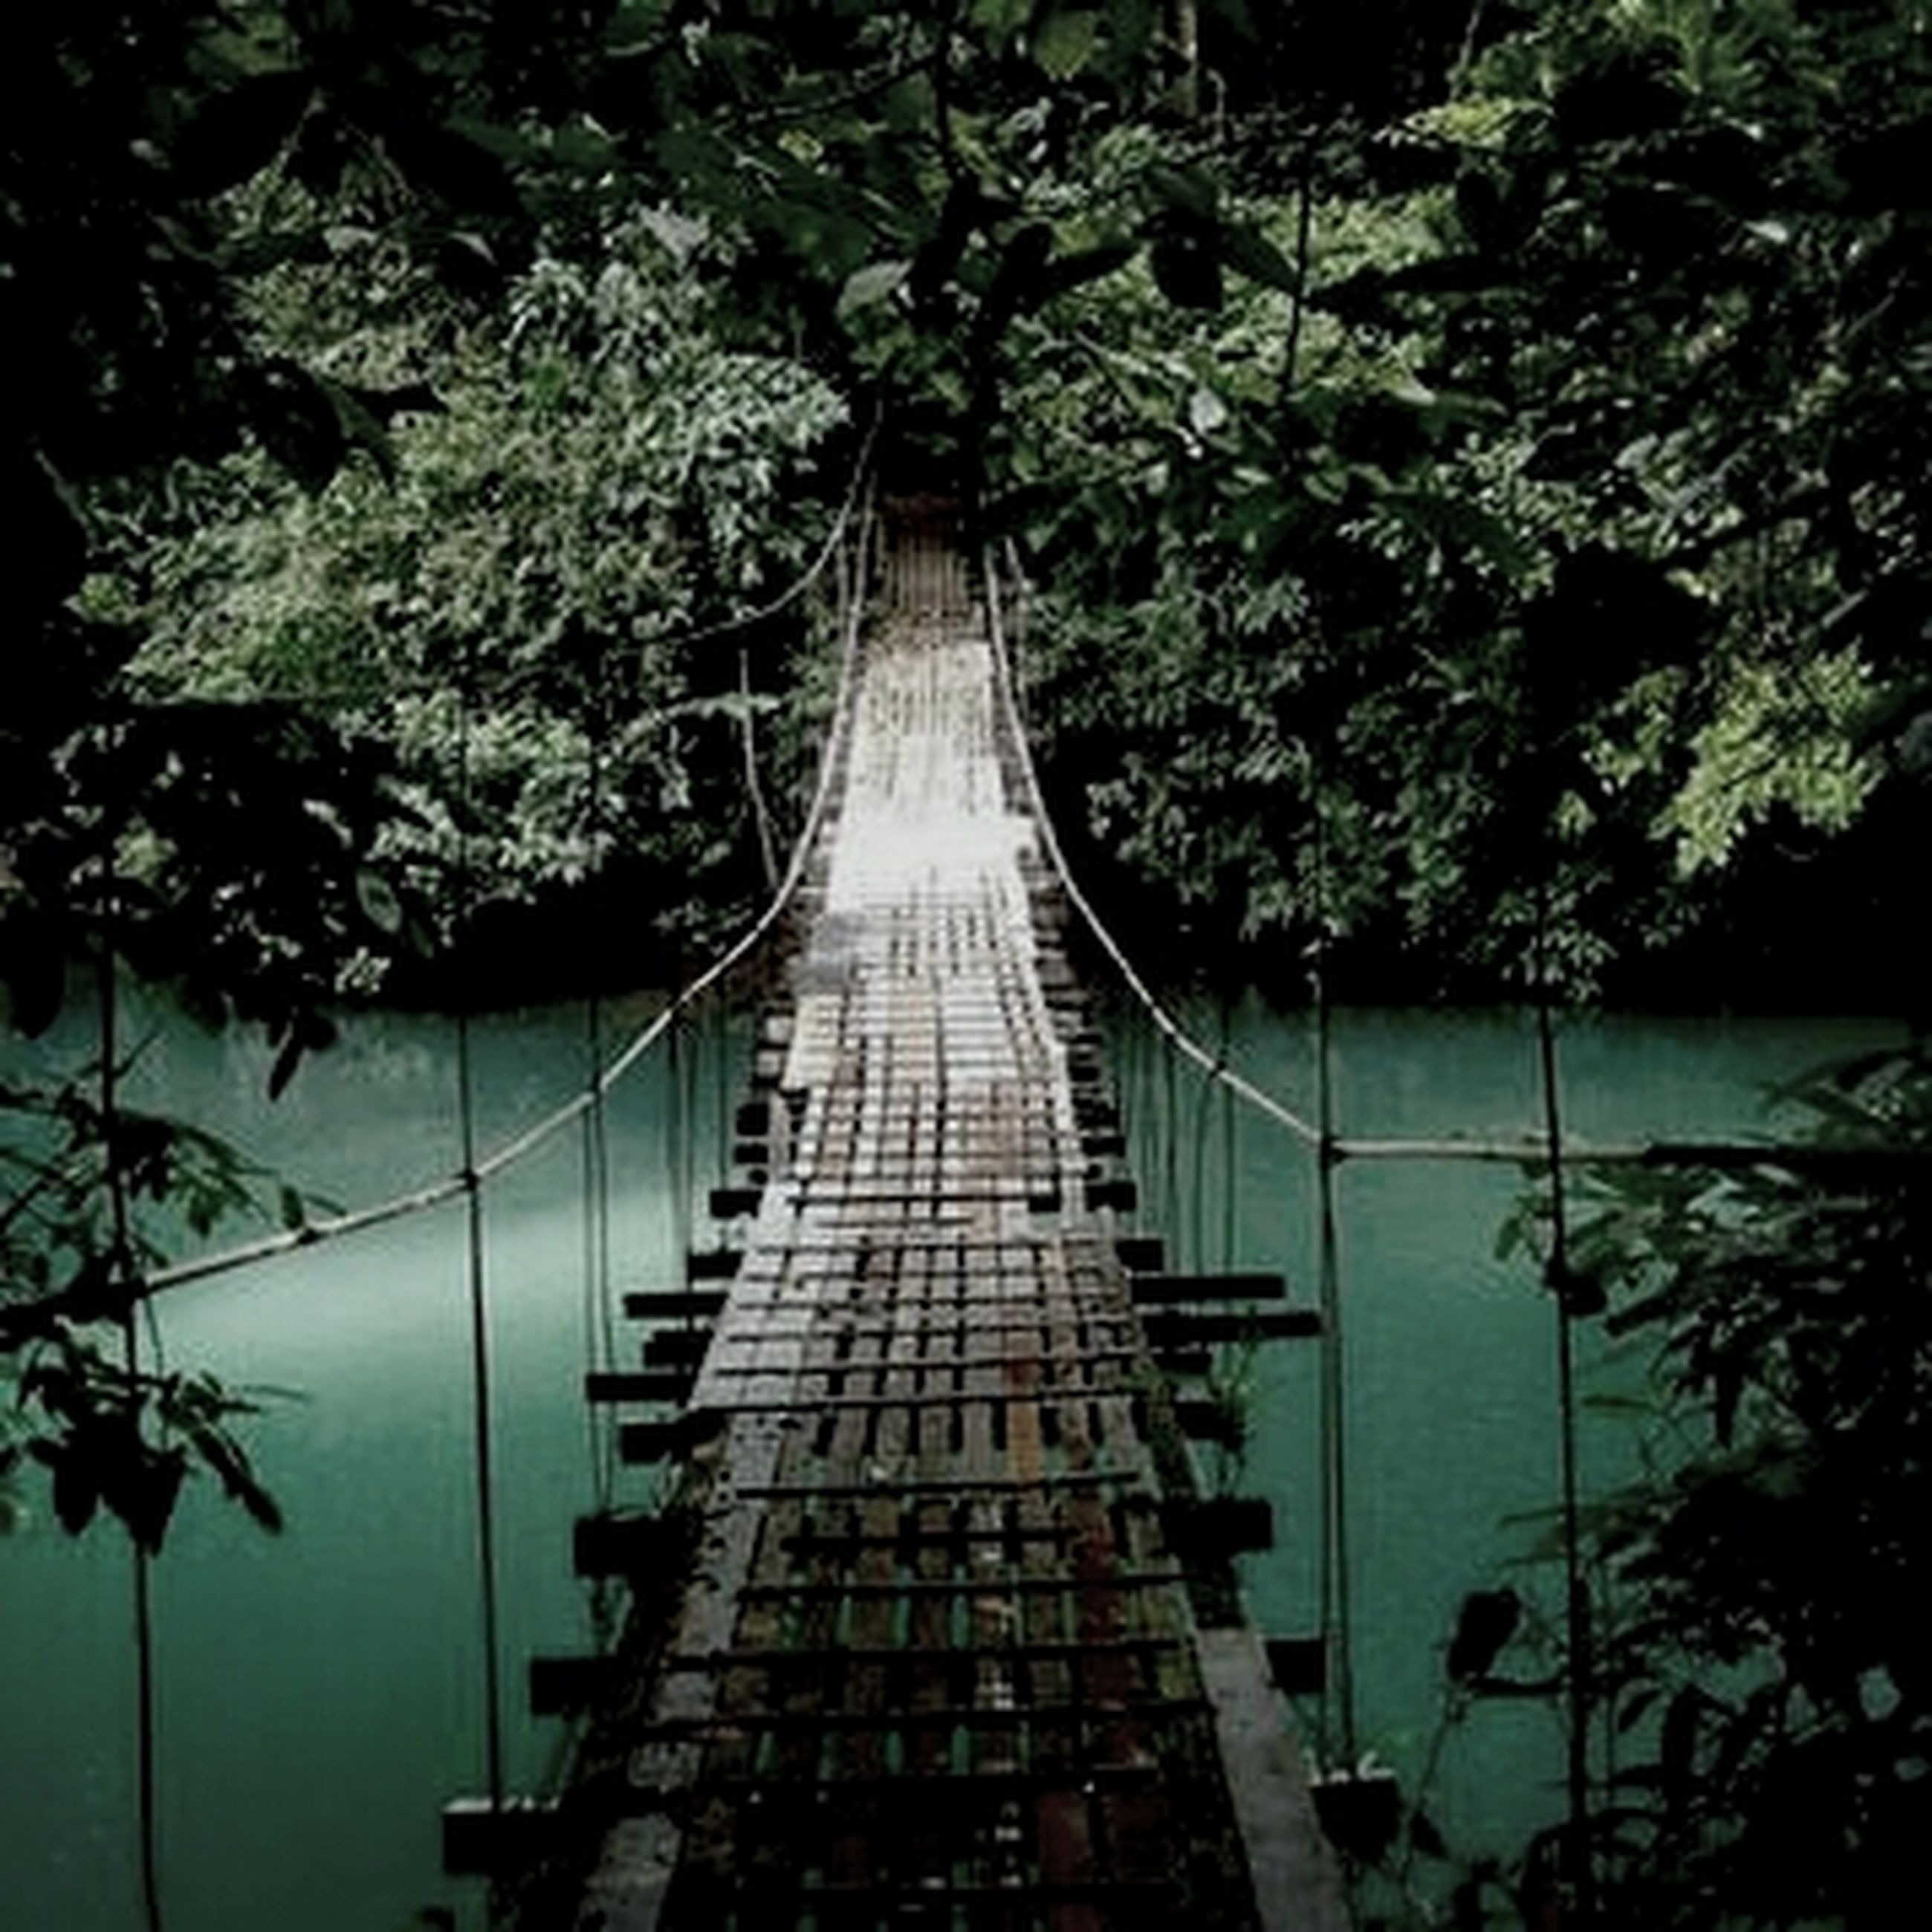 tree, connection, the way forward, bridge - man made structure, diminishing perspective, built structure, growth, footbridge, railing, water, tranquility, bridge, nature, vanishing point, branch, architecture, transportation, no people, forest, sky